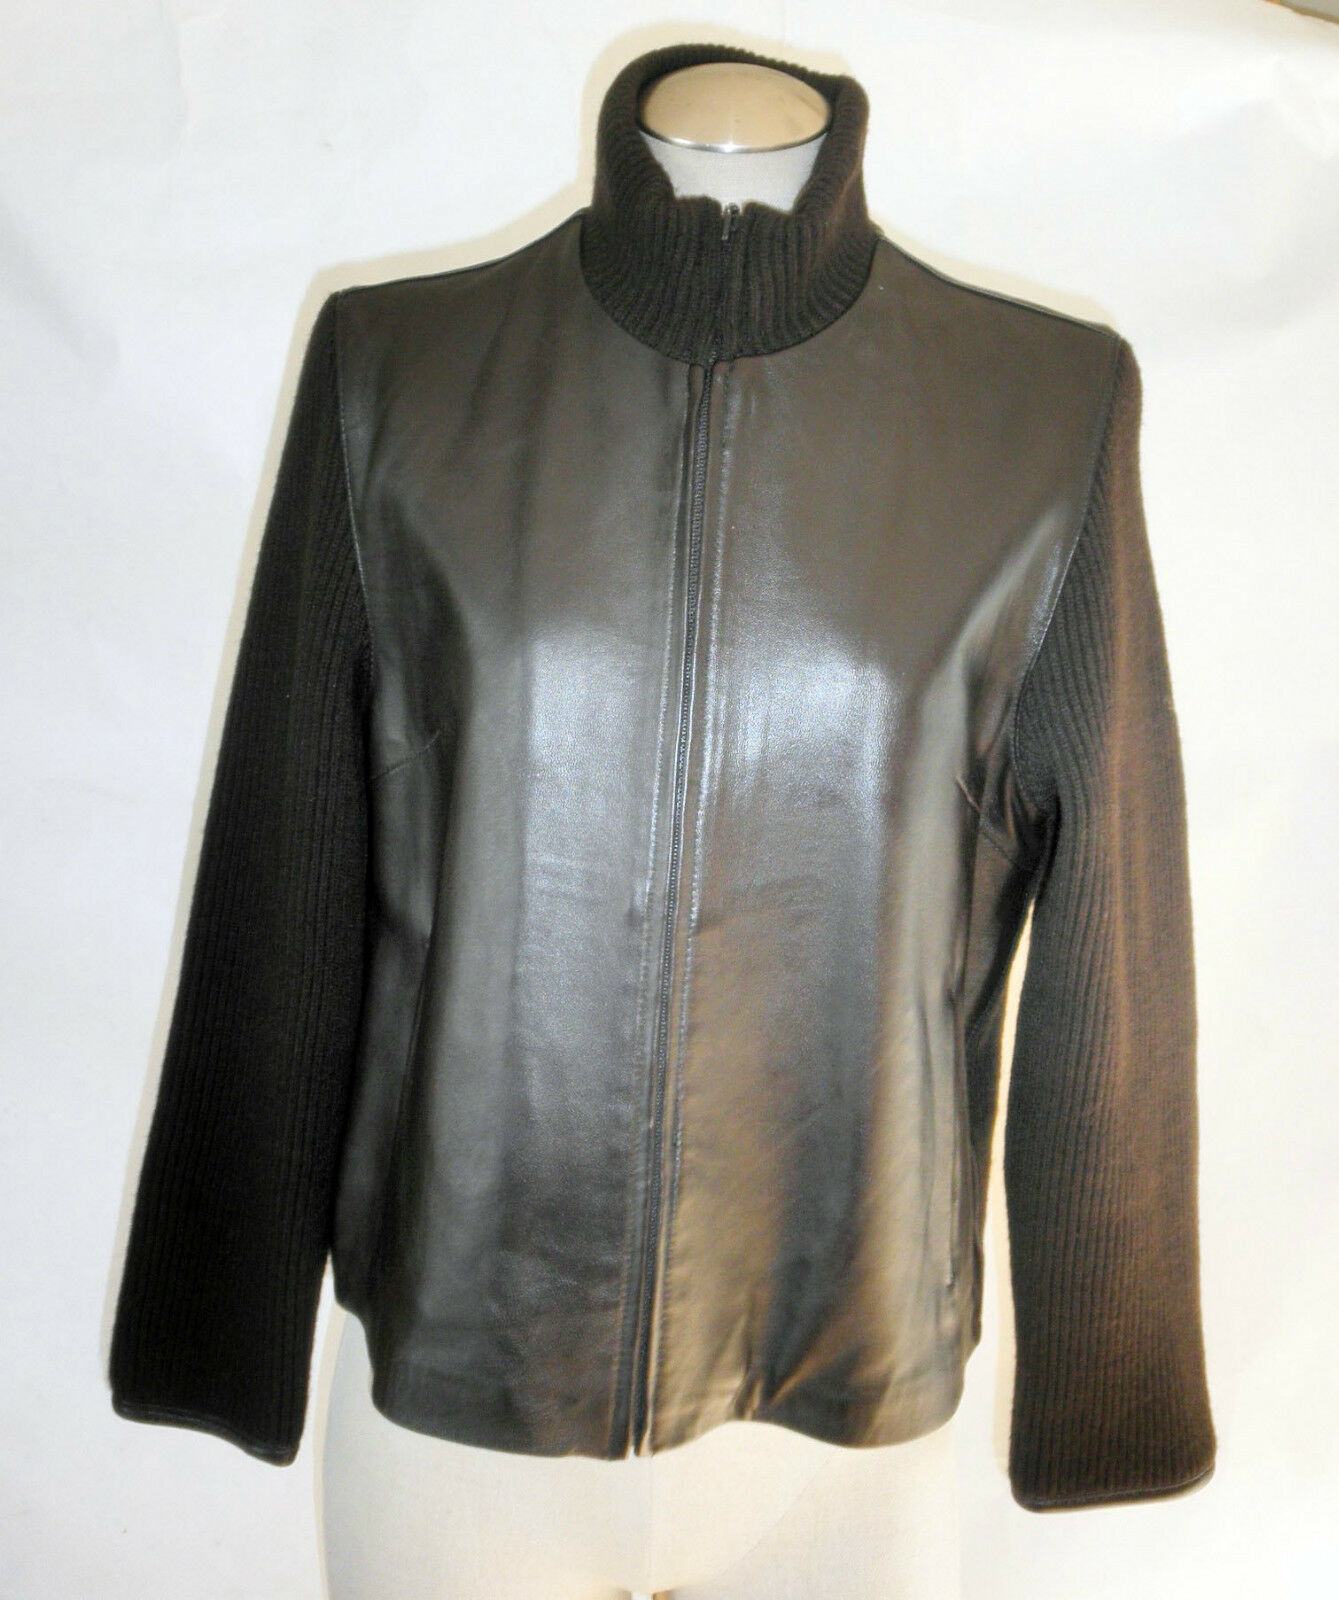 Brown Knit Sweater & Leather Front With Front Zipper SZ M by Marvin Richards